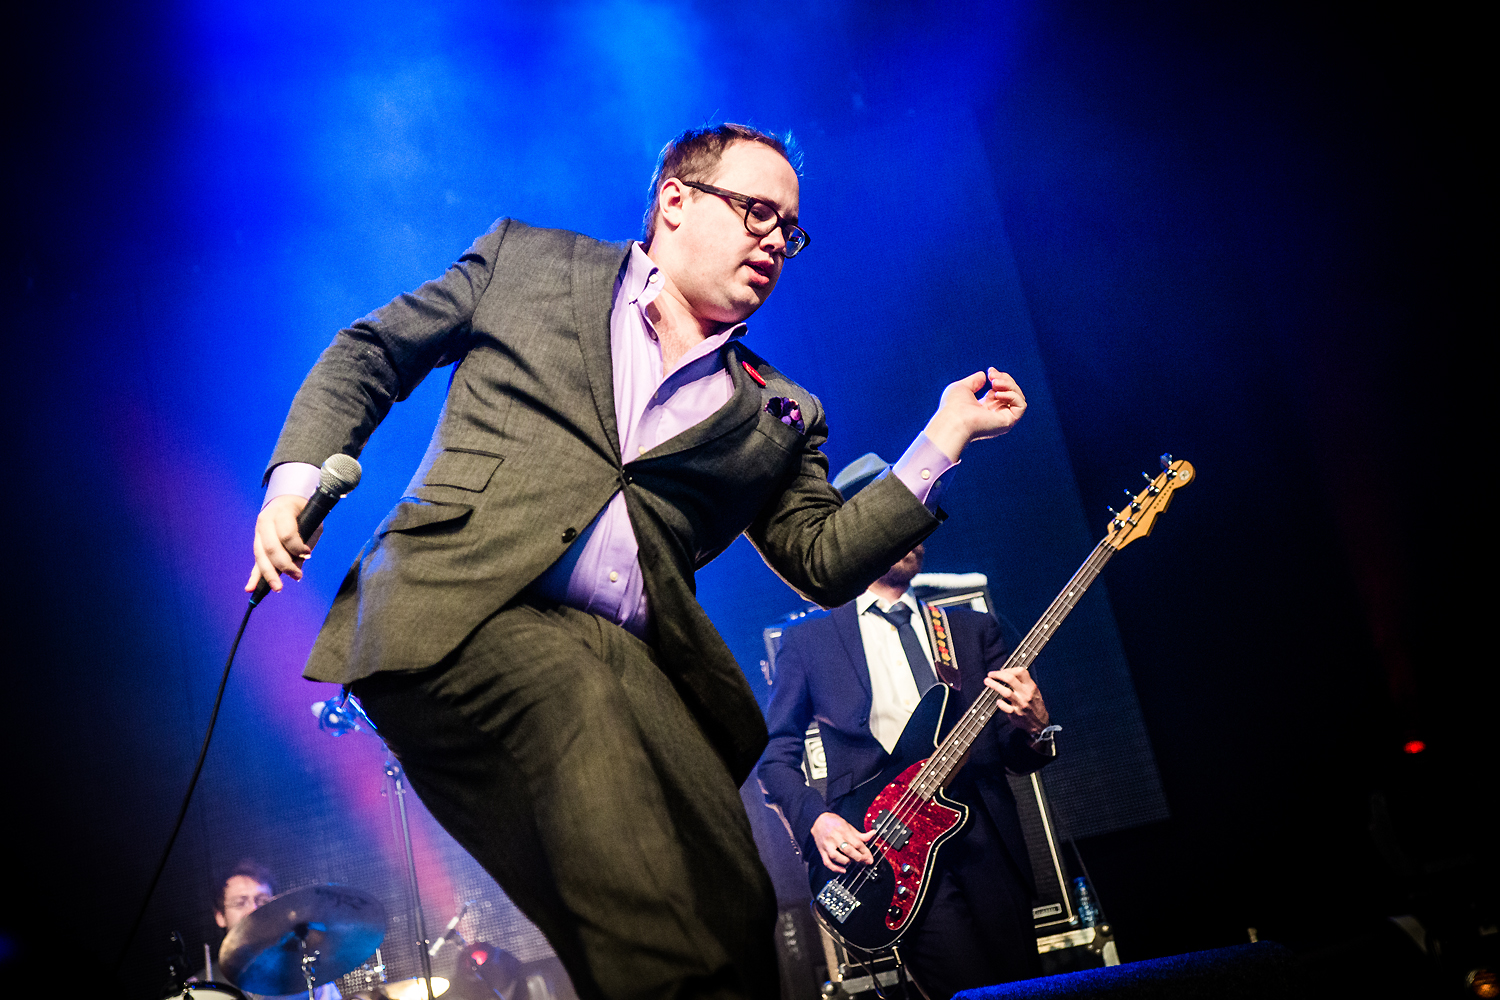 BKS 422 - St Paul & The Broken Bones